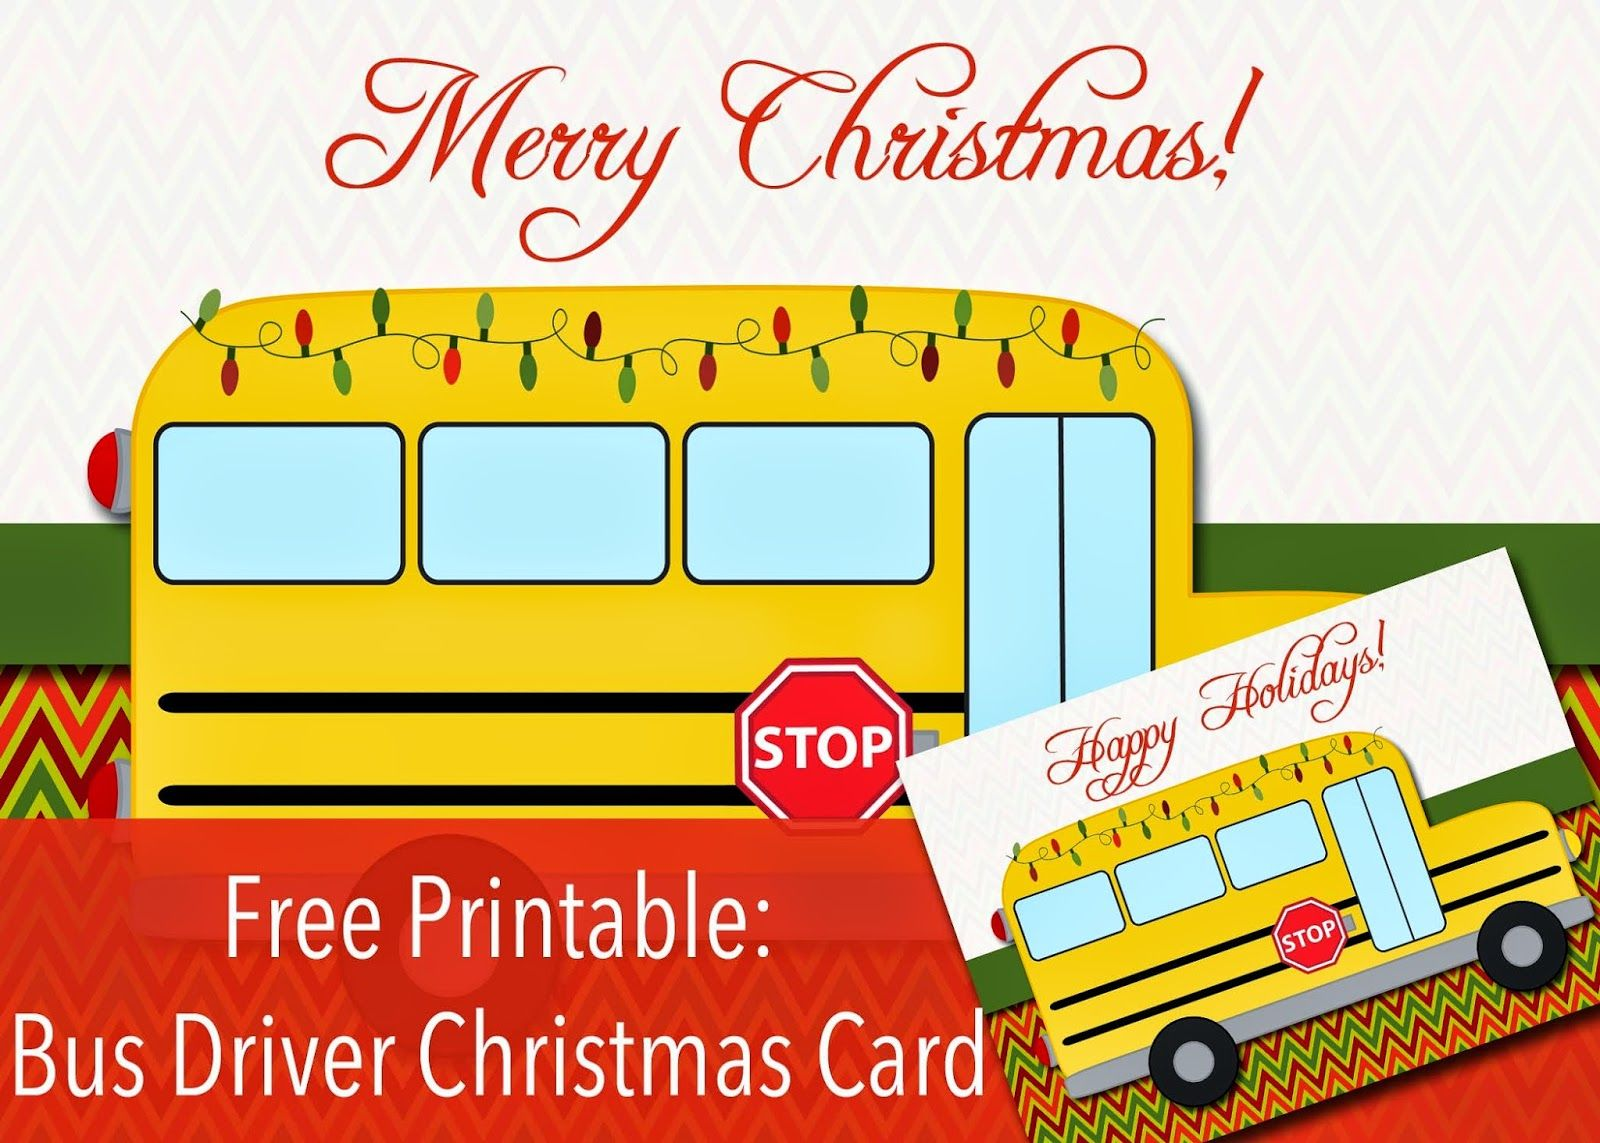 Christmas party bus clipart clipart library Free Printable: Bus Driver Christmas or Happy Holidays Card | Bus ... clipart library